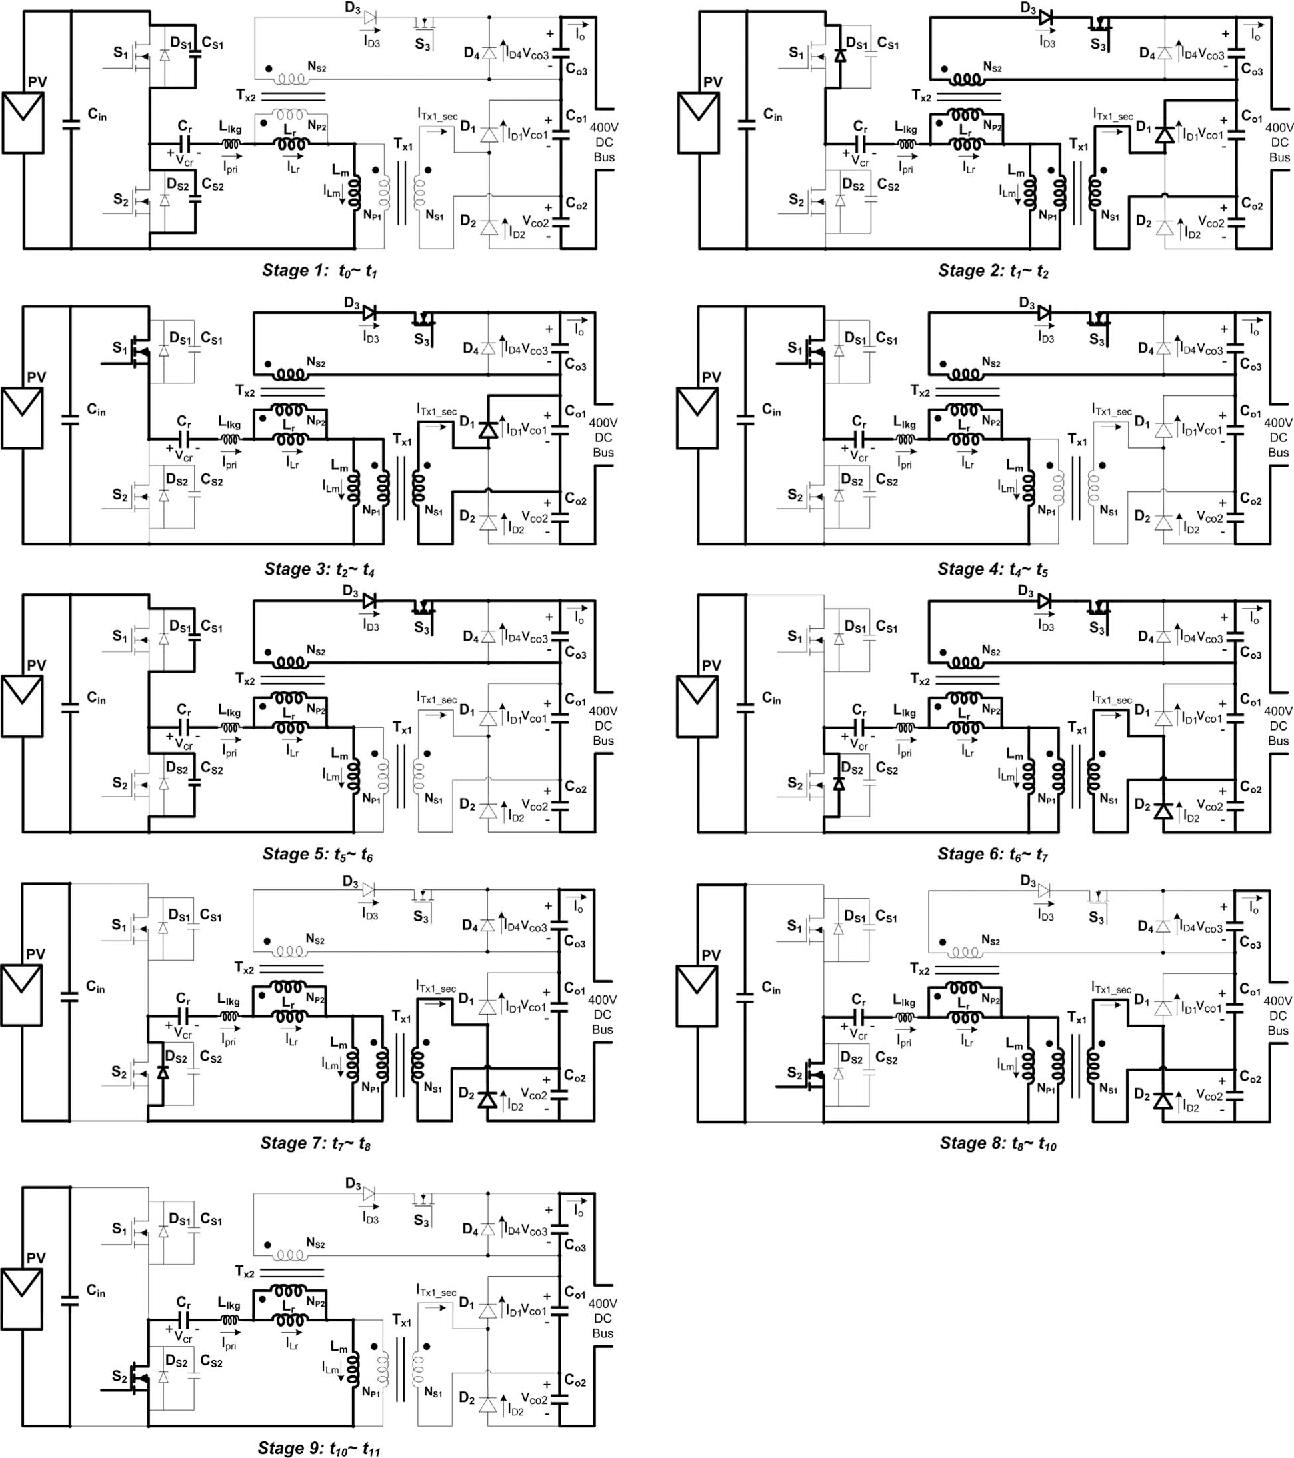 A High Efficiency Pv Module Integrated Dc Converter For Energy Fullbridge Dcdc Switch Mode Power Supply Tower R System Harvest In Freedm Systems Semantic Scholar